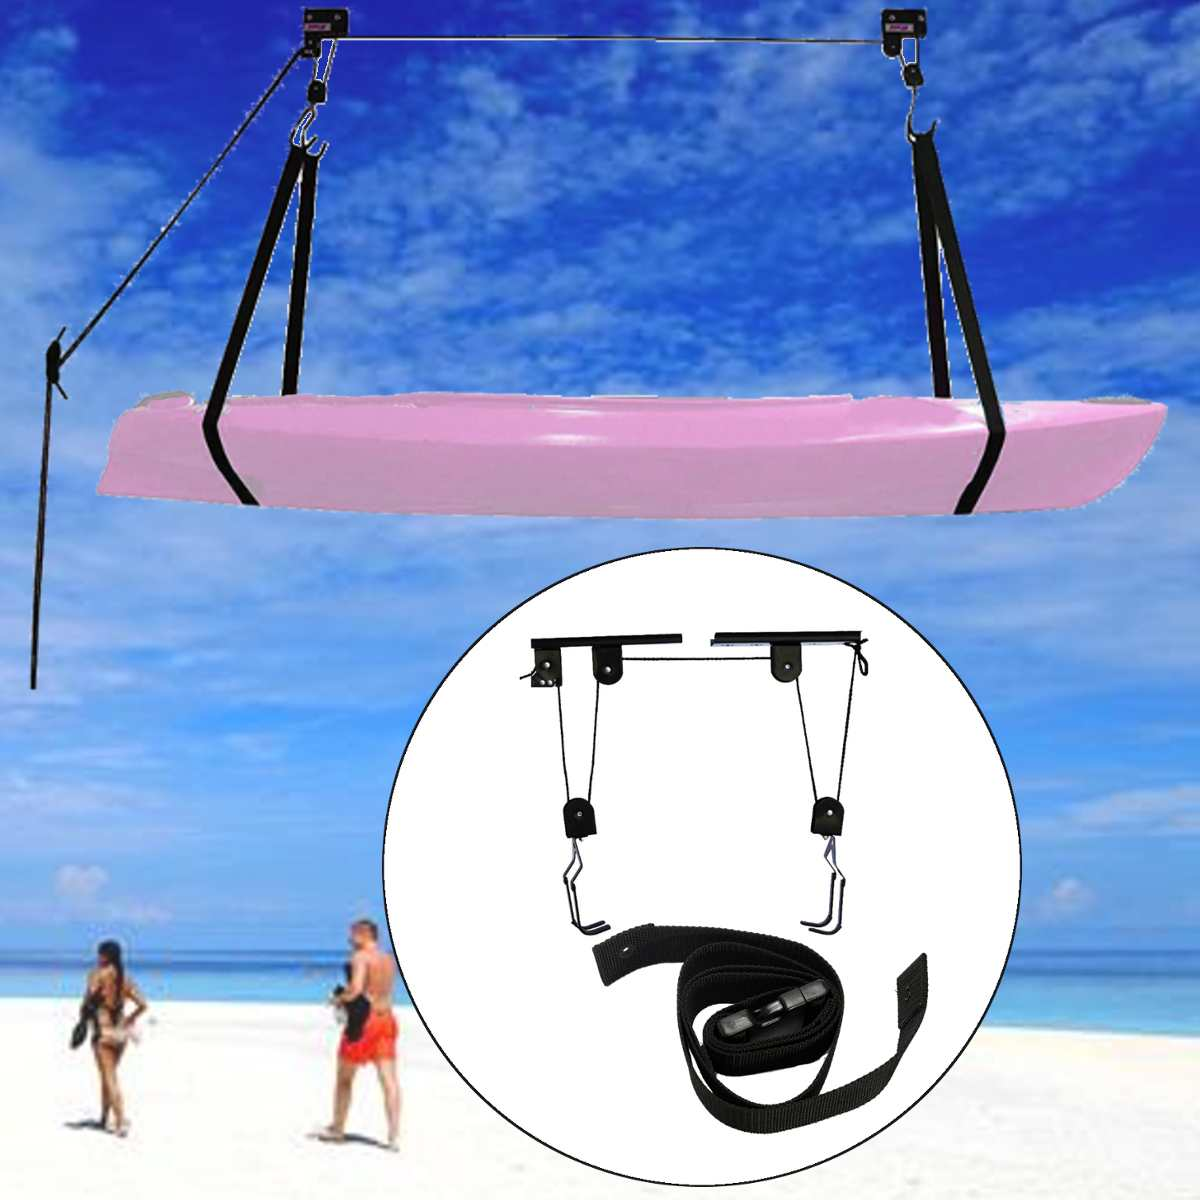 120cm Black Canoe Boat Kayak Buckle With Double Pull Button Kayak Hoist Lift Pulley System Storage Garage Ceiling Rack Part New